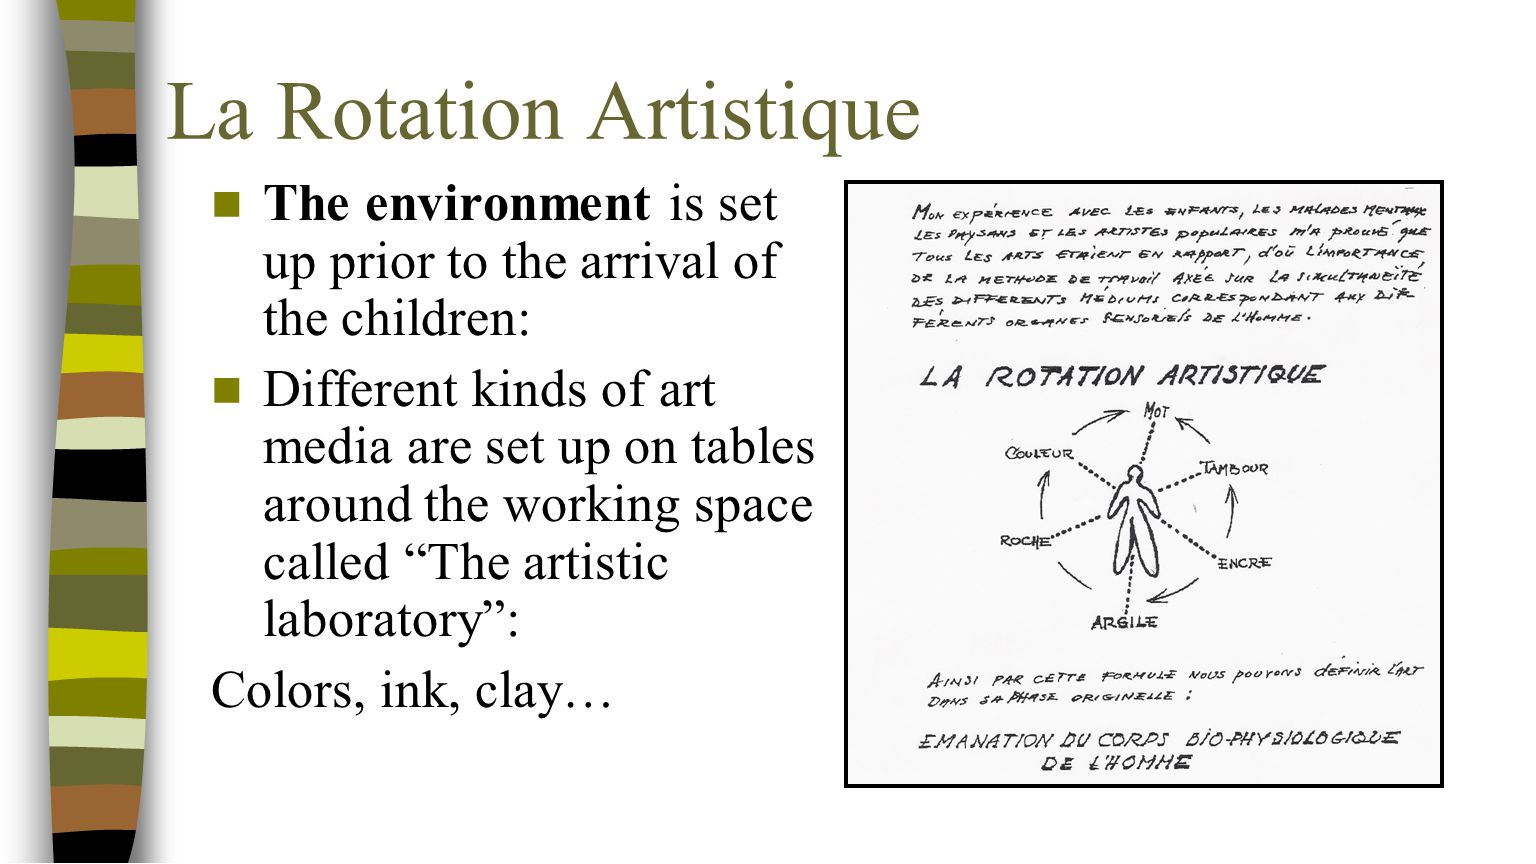 La Rotation Artistique The environment is set up prior to the arrival of the children: Different kinds of art media are set up on tables around the wo